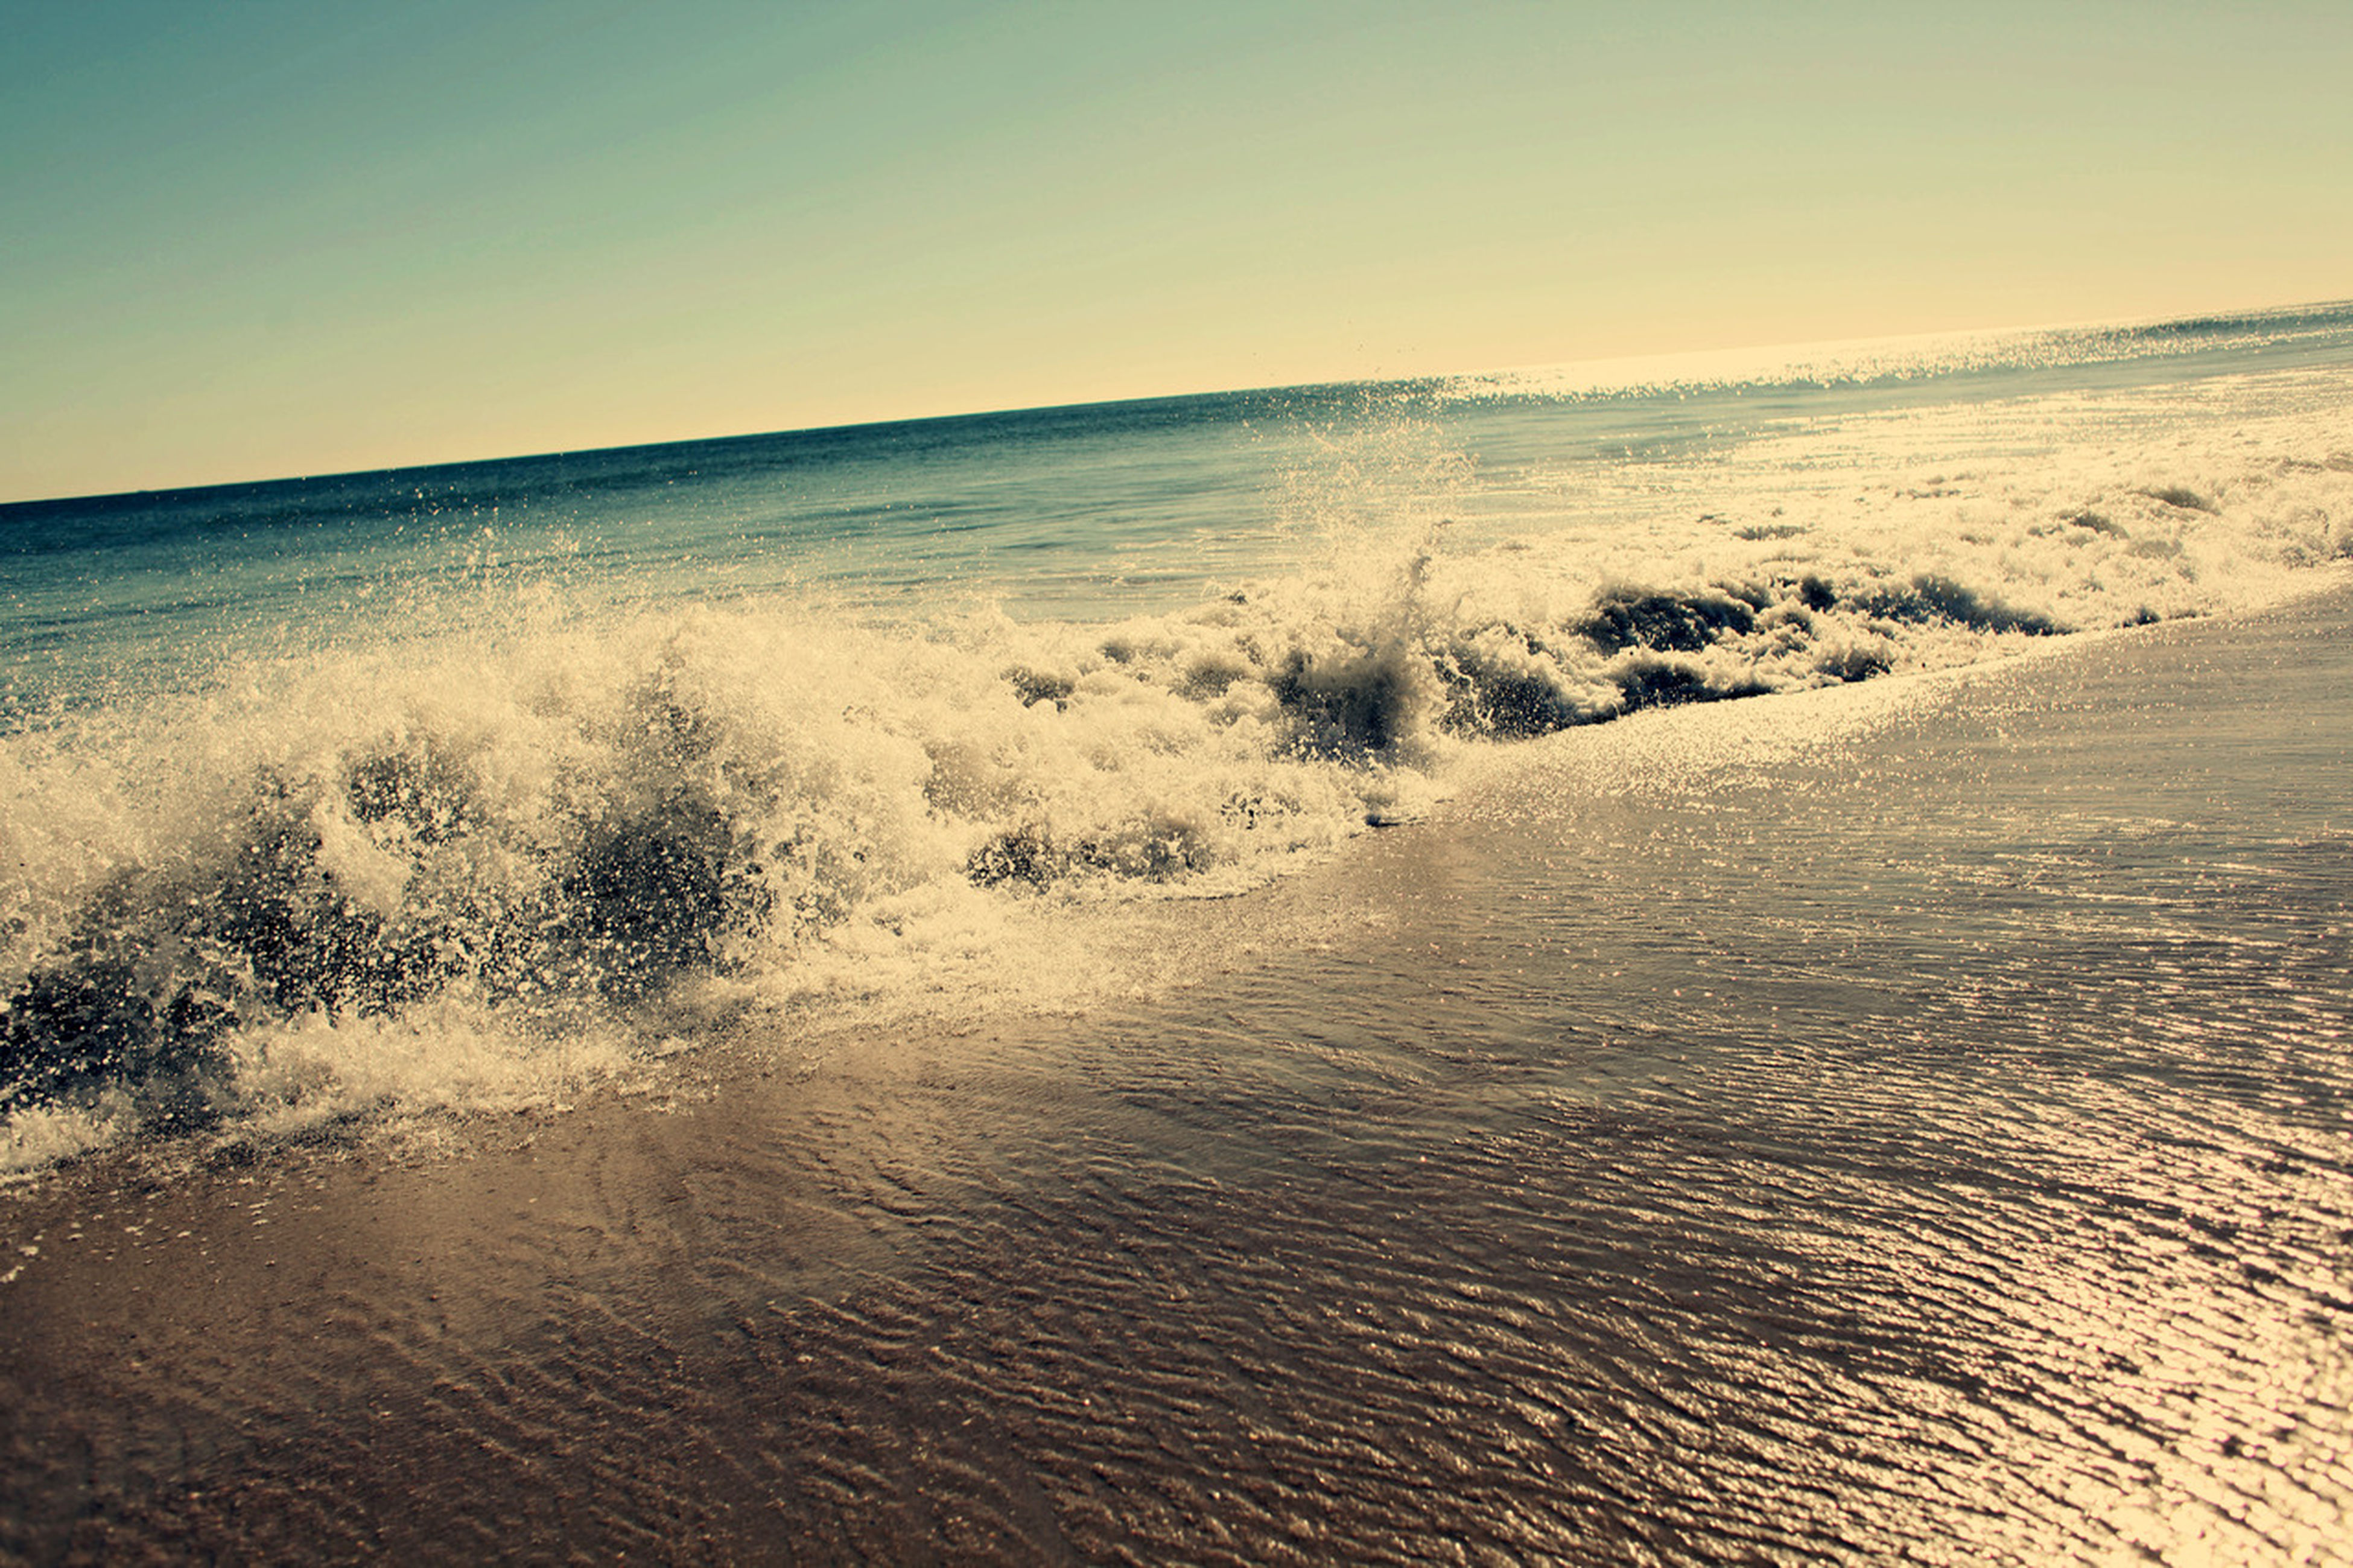 water, sea, tranquil scene, scenics, clear sky, horizon over water, waterfront, tranquility, beauty in nature, beach, wave, nature, rippled, copy space, sand, idyllic, sky, shore, surf, seascape